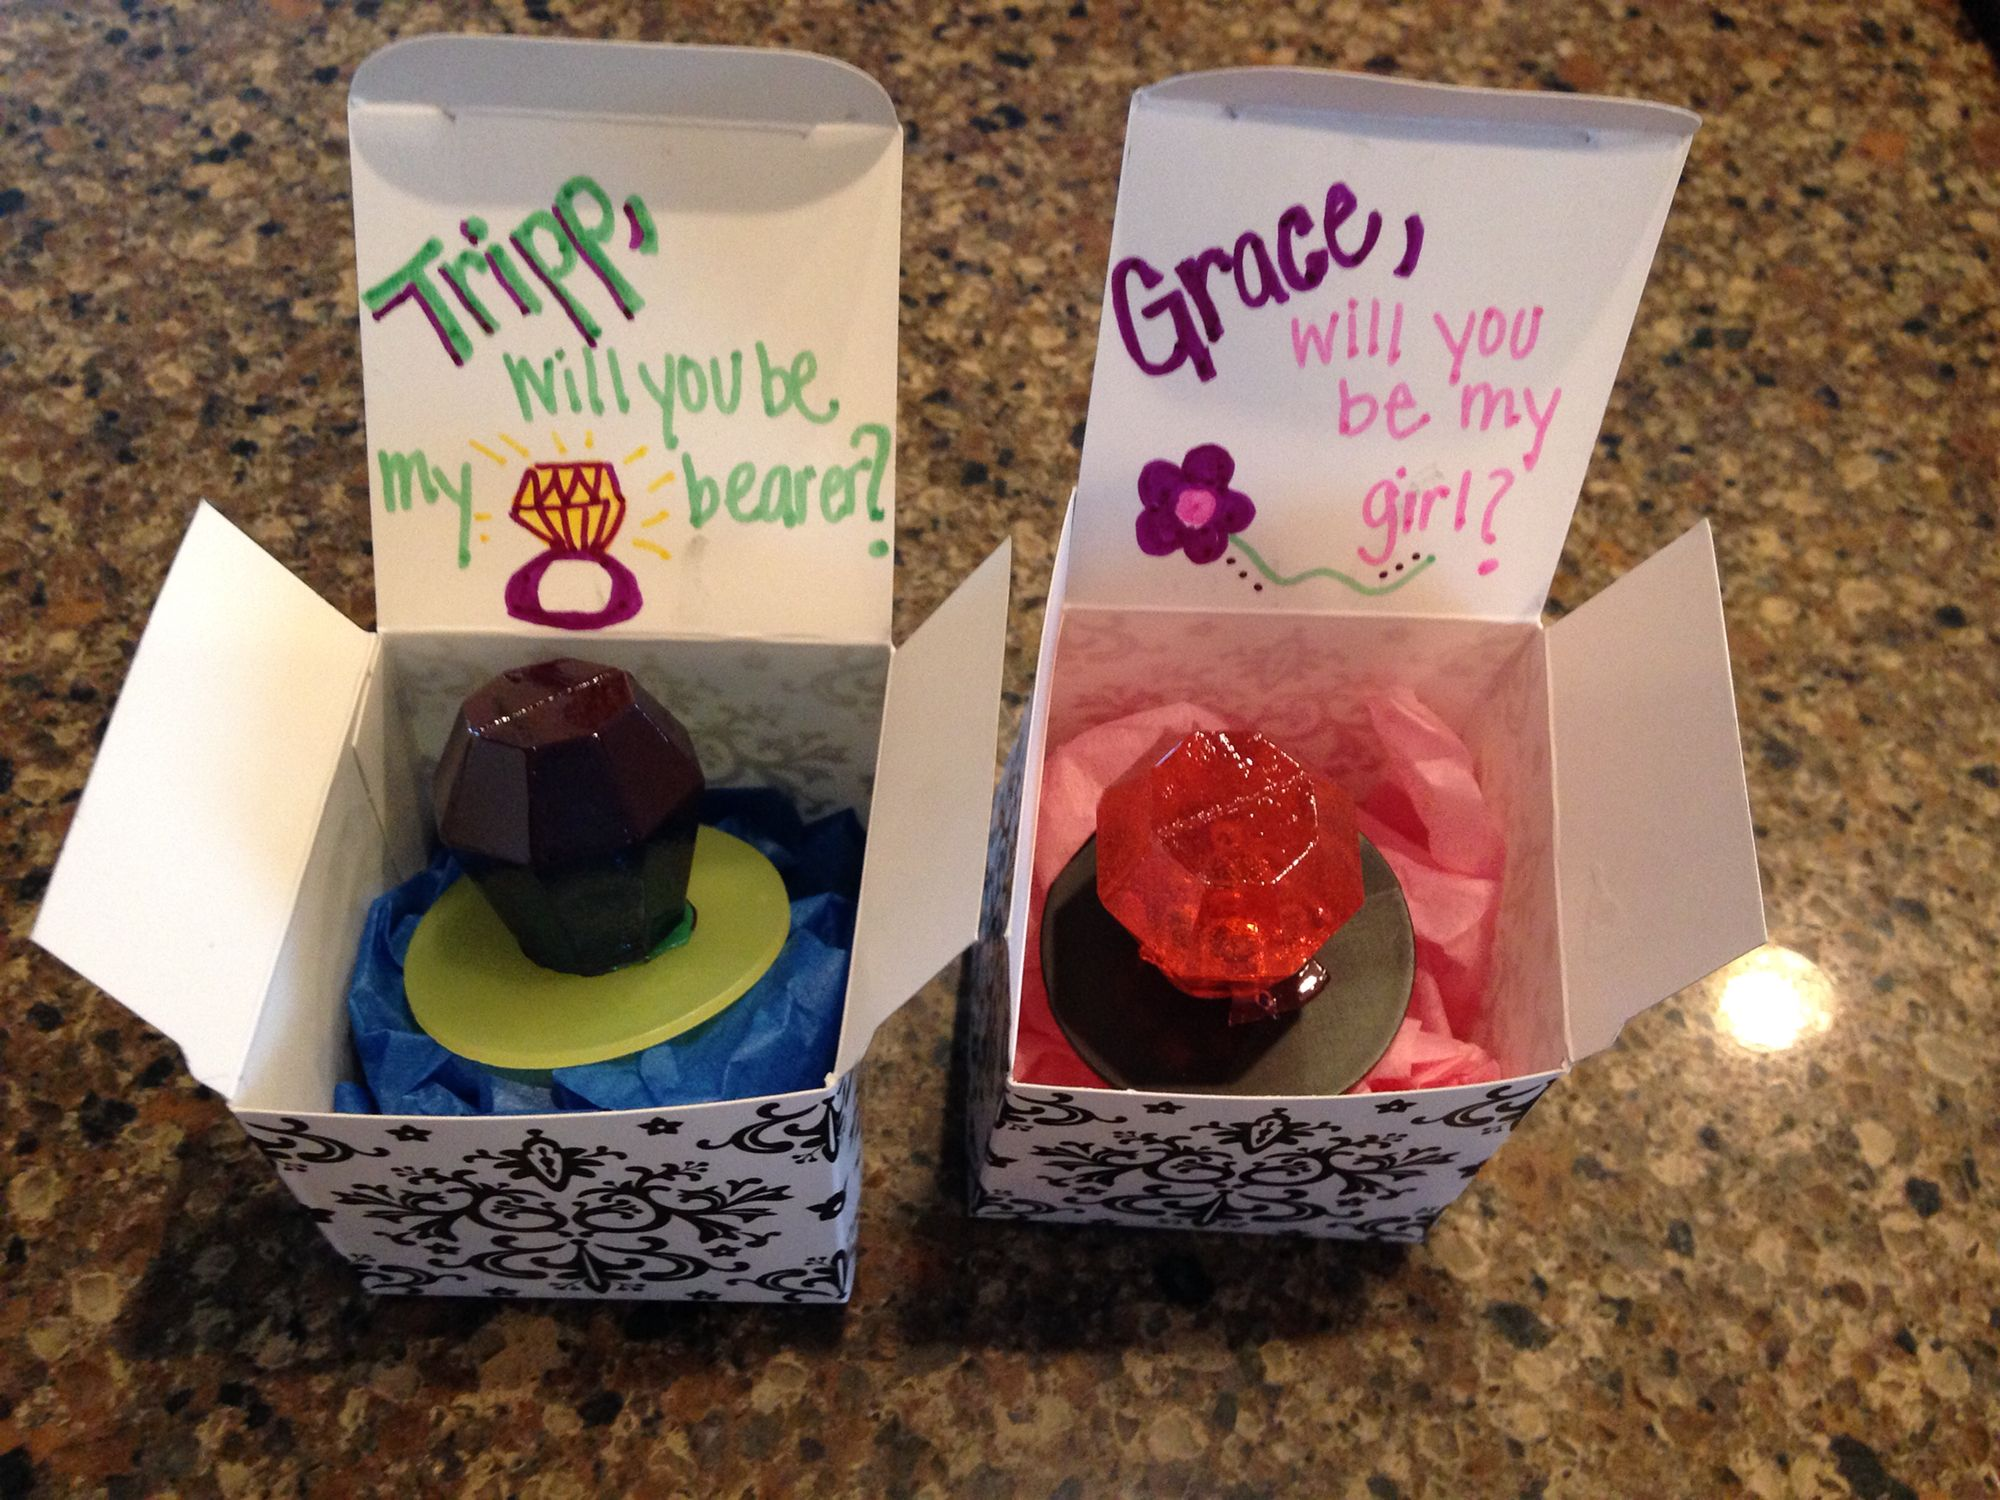 easy way to propose a girl